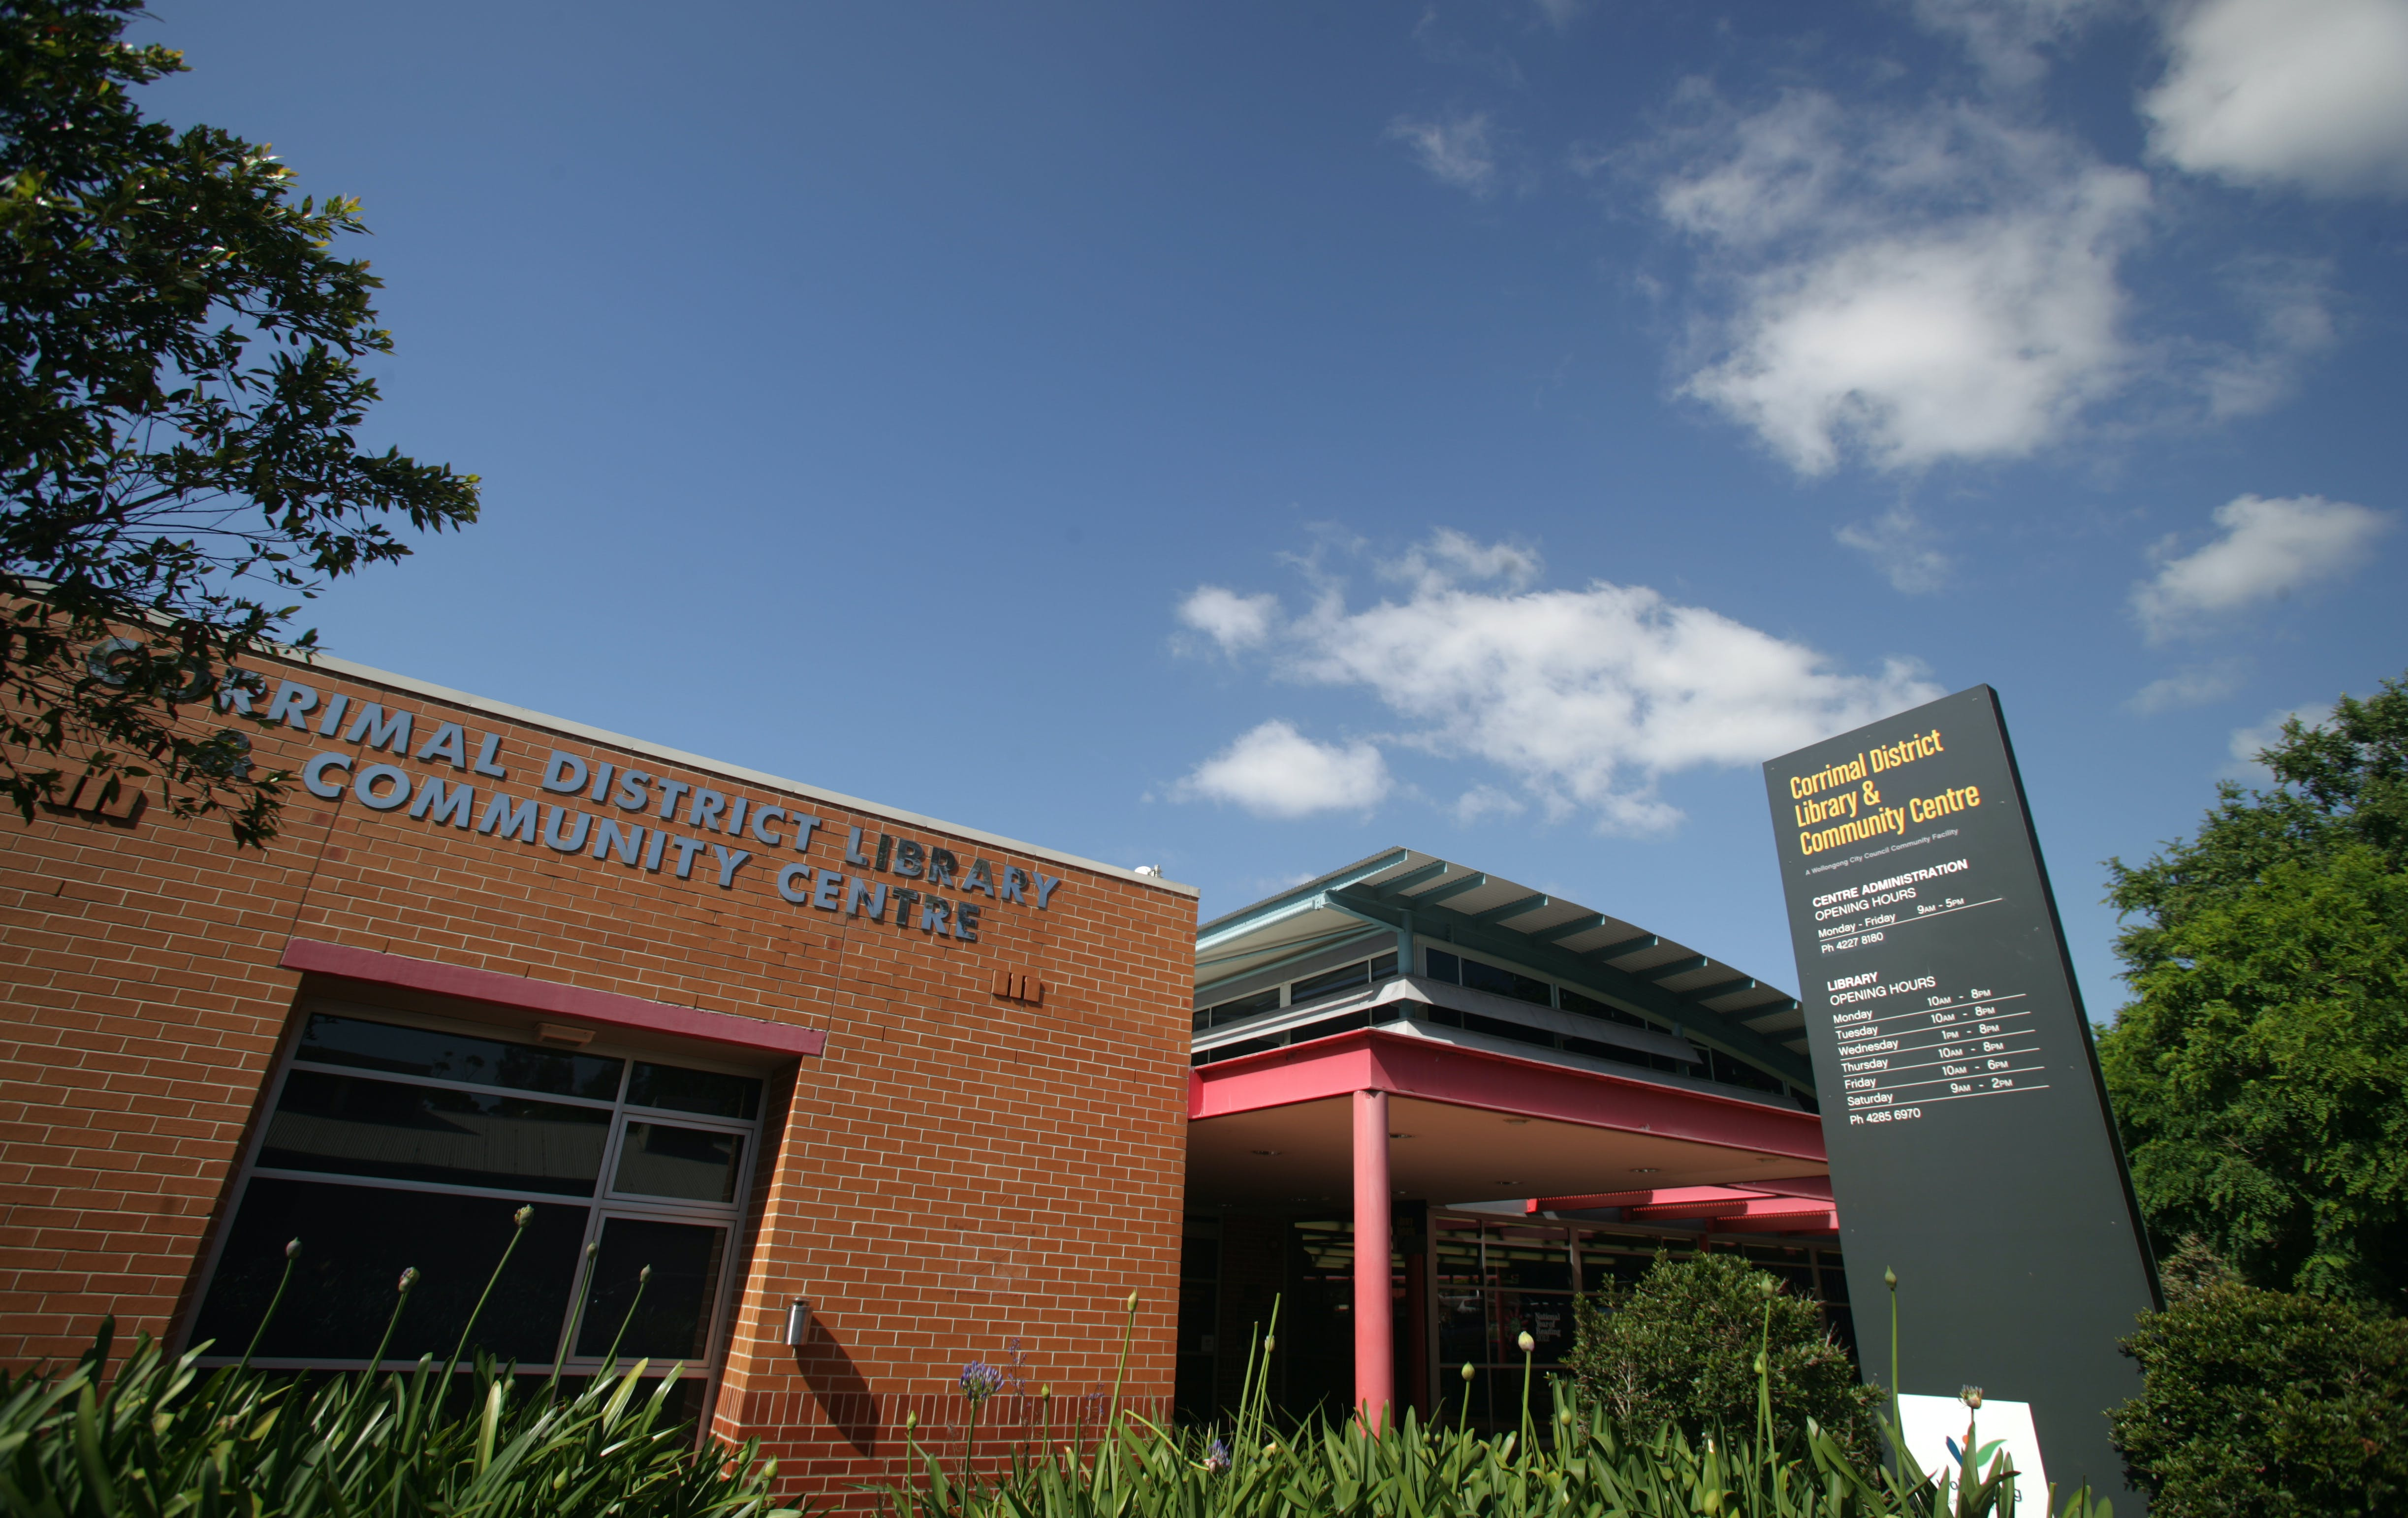 Corrimal Community Centre